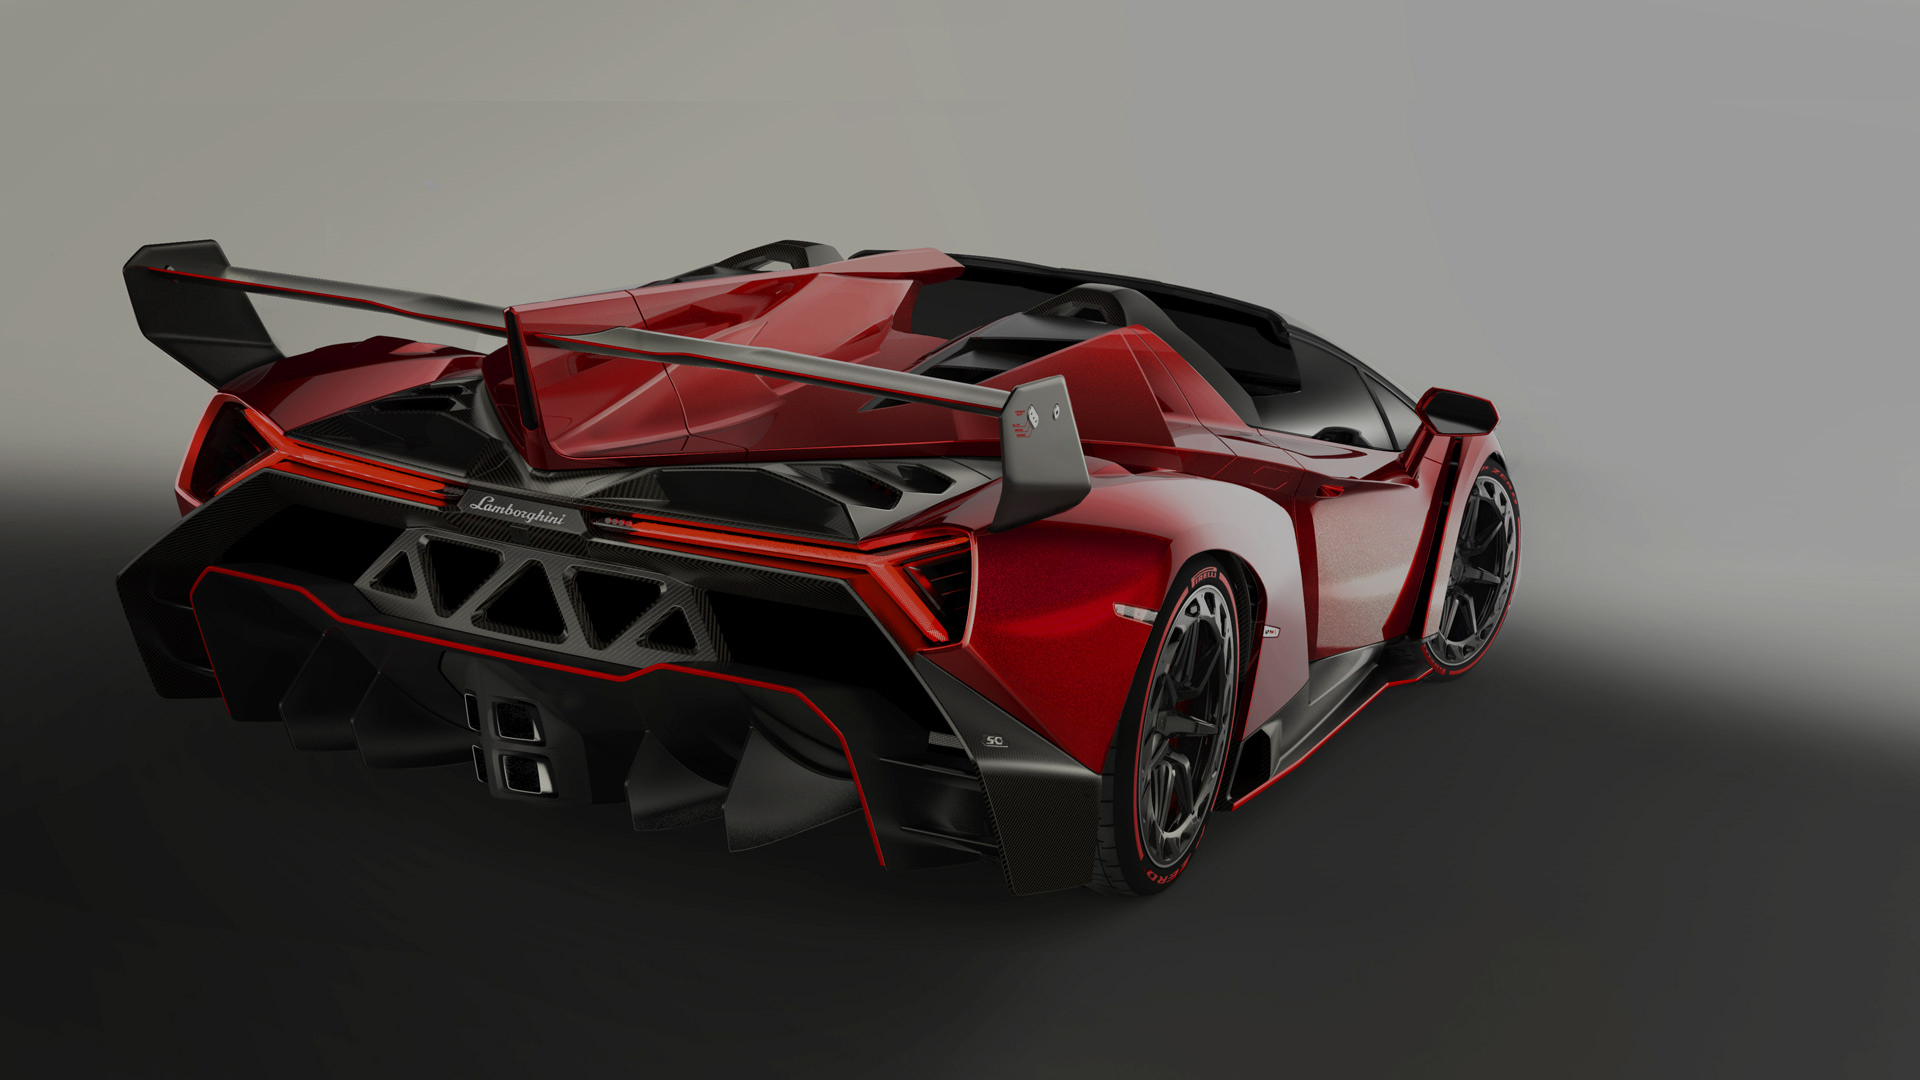 Lamborghini Veneno Roadster Model Information